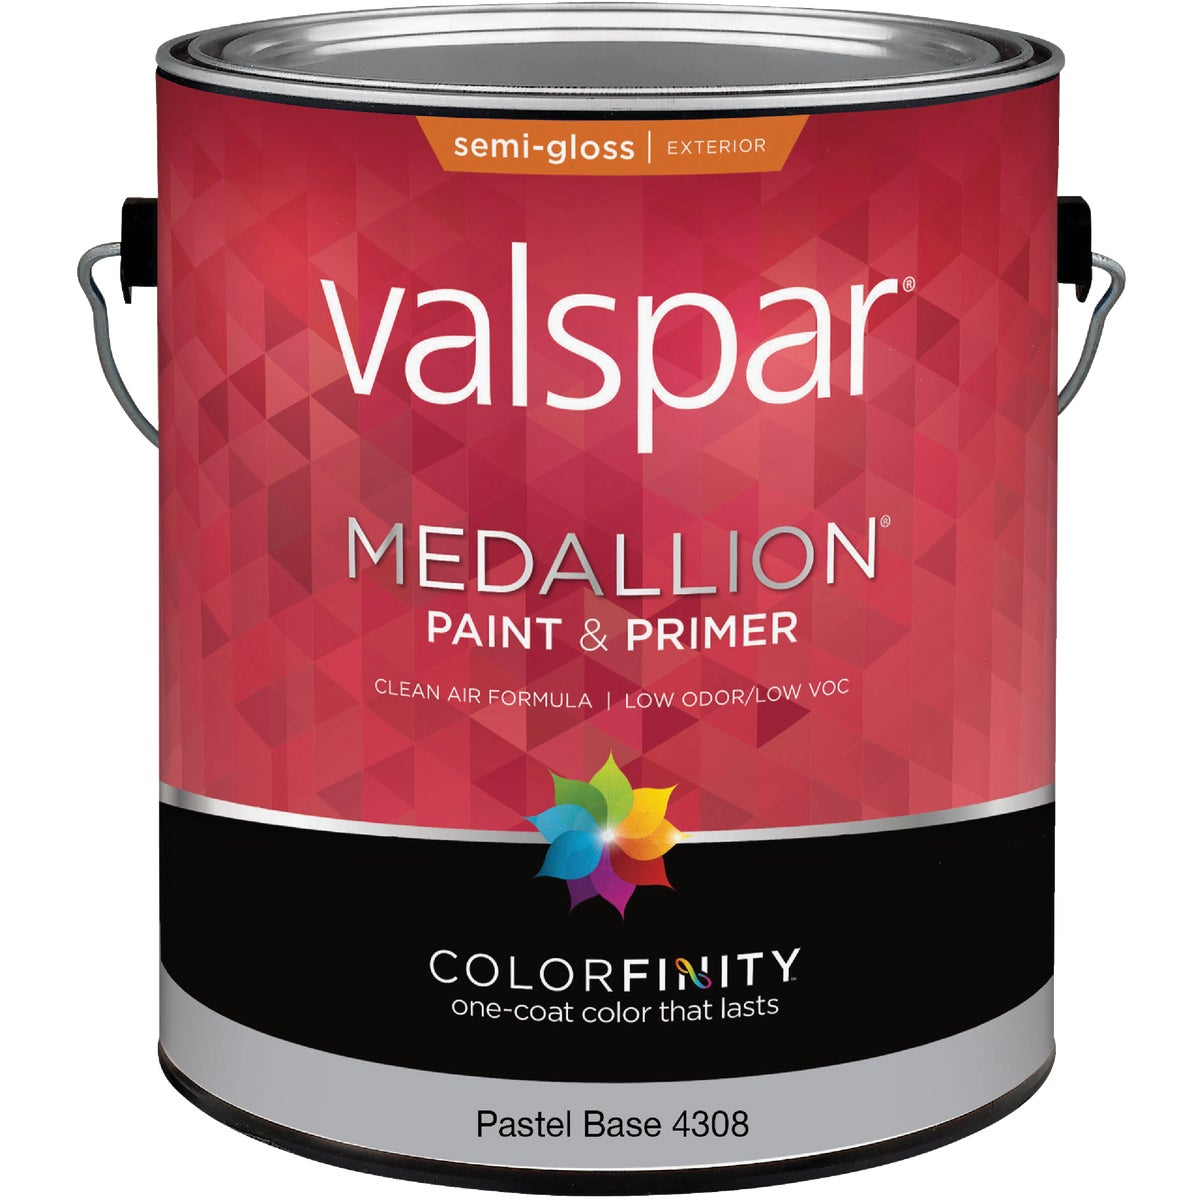 EXT S/G PASTEL BS PAINT - 027.0004308.007 by Valspar Corp